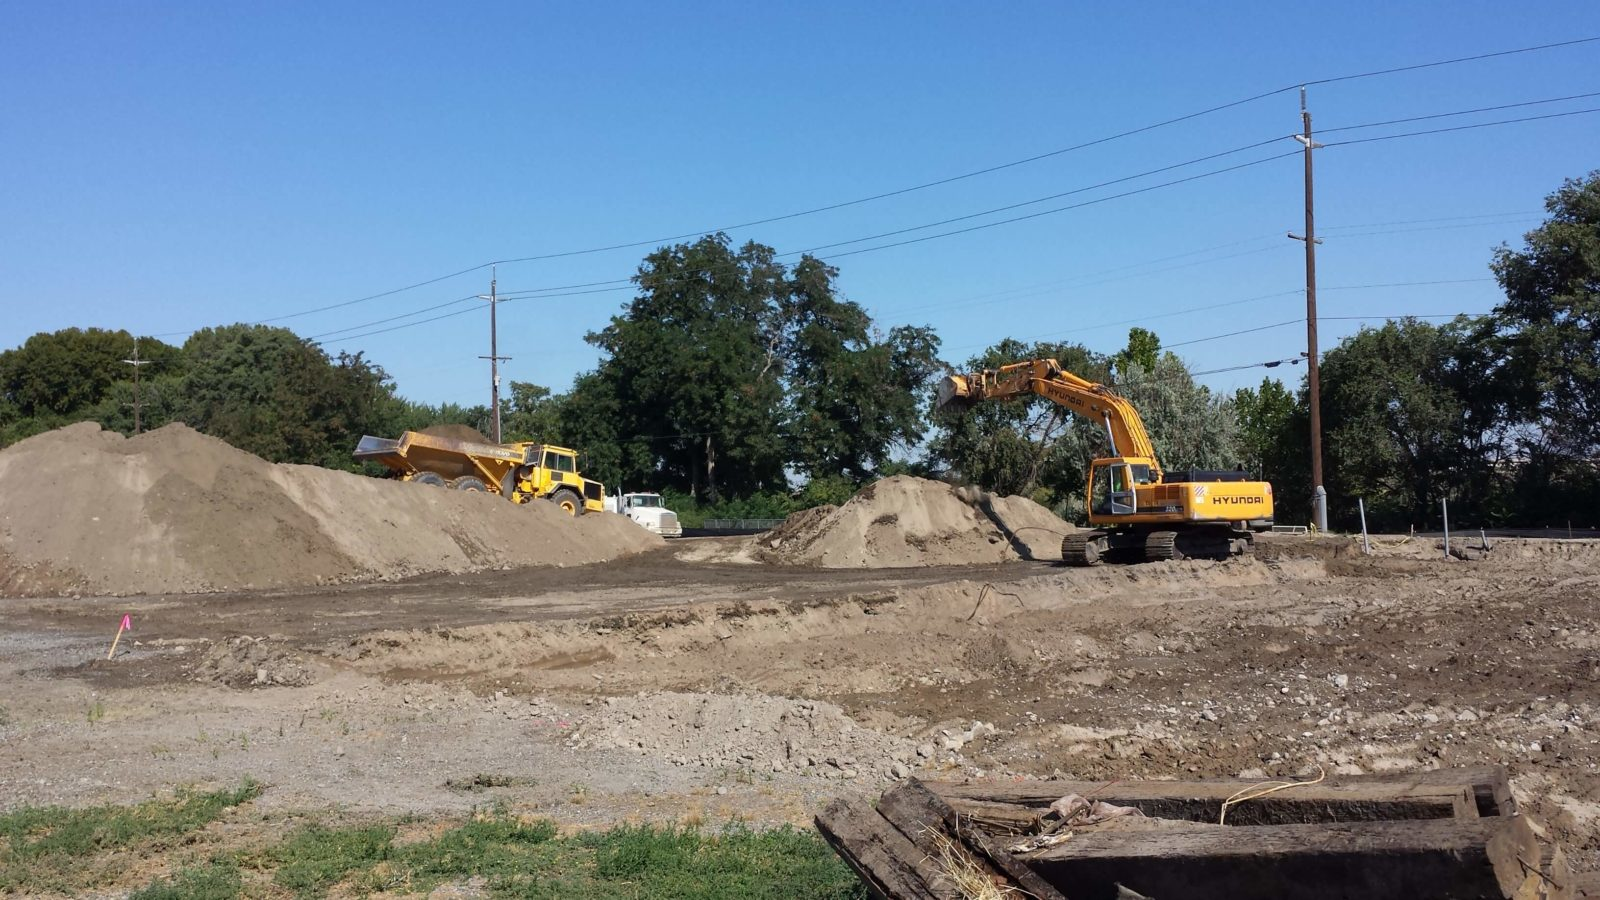 Heavy equipment moving dirt into piles.